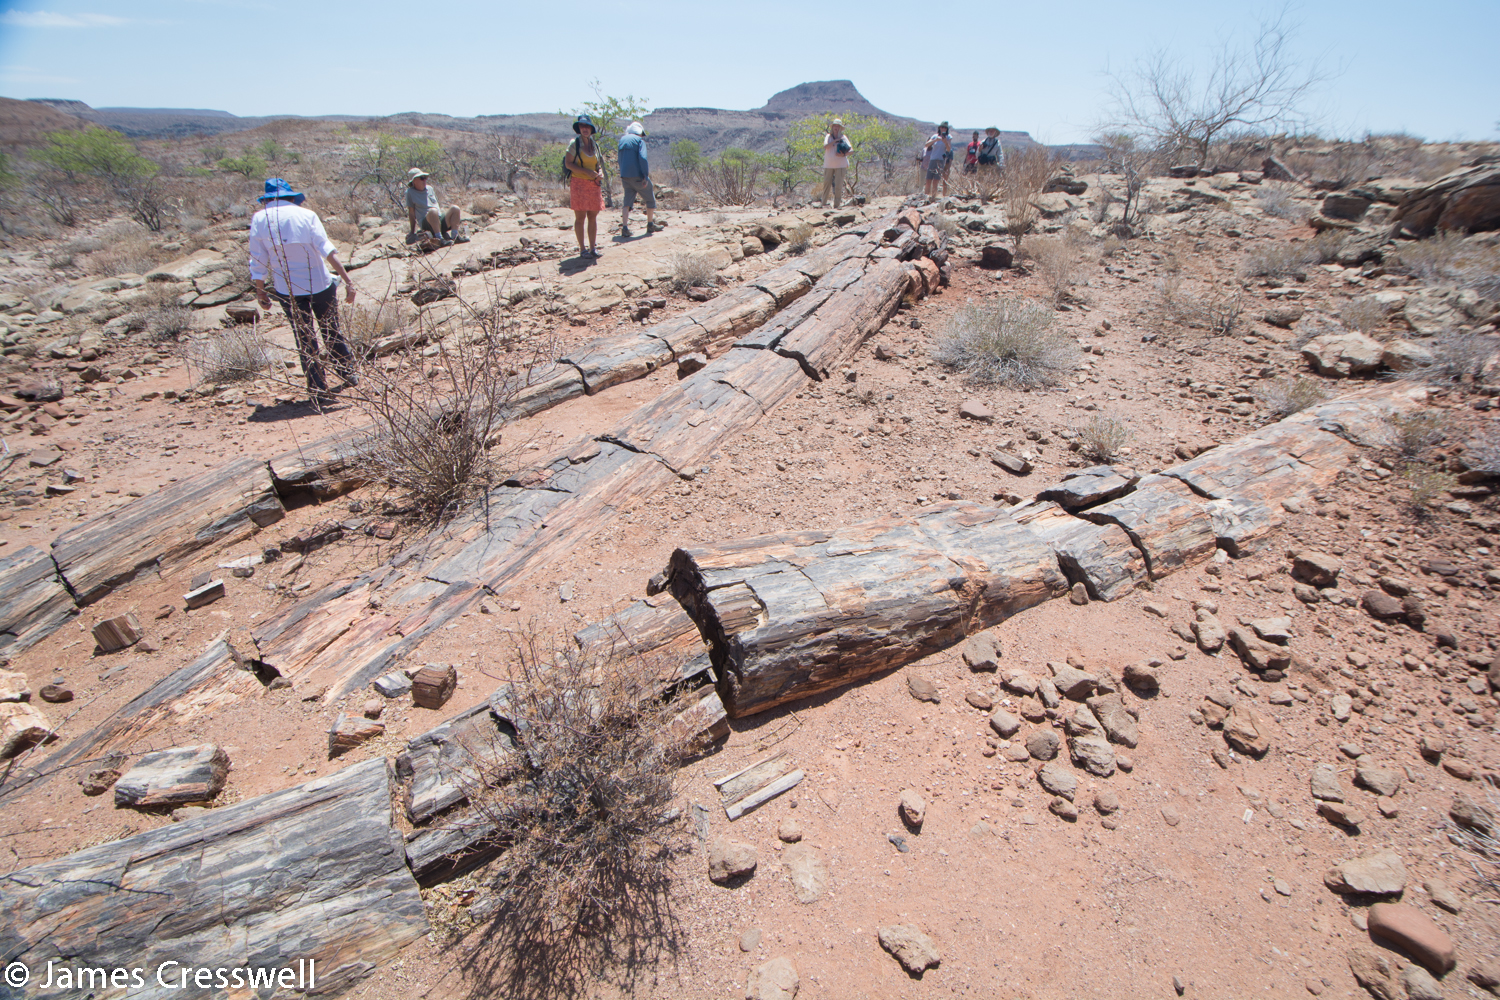 270ma Permian petrified trees which grew in cold humid conditions and were up to 30m high. The trees are contained within fluvial sediments of the Karoo supergroup.